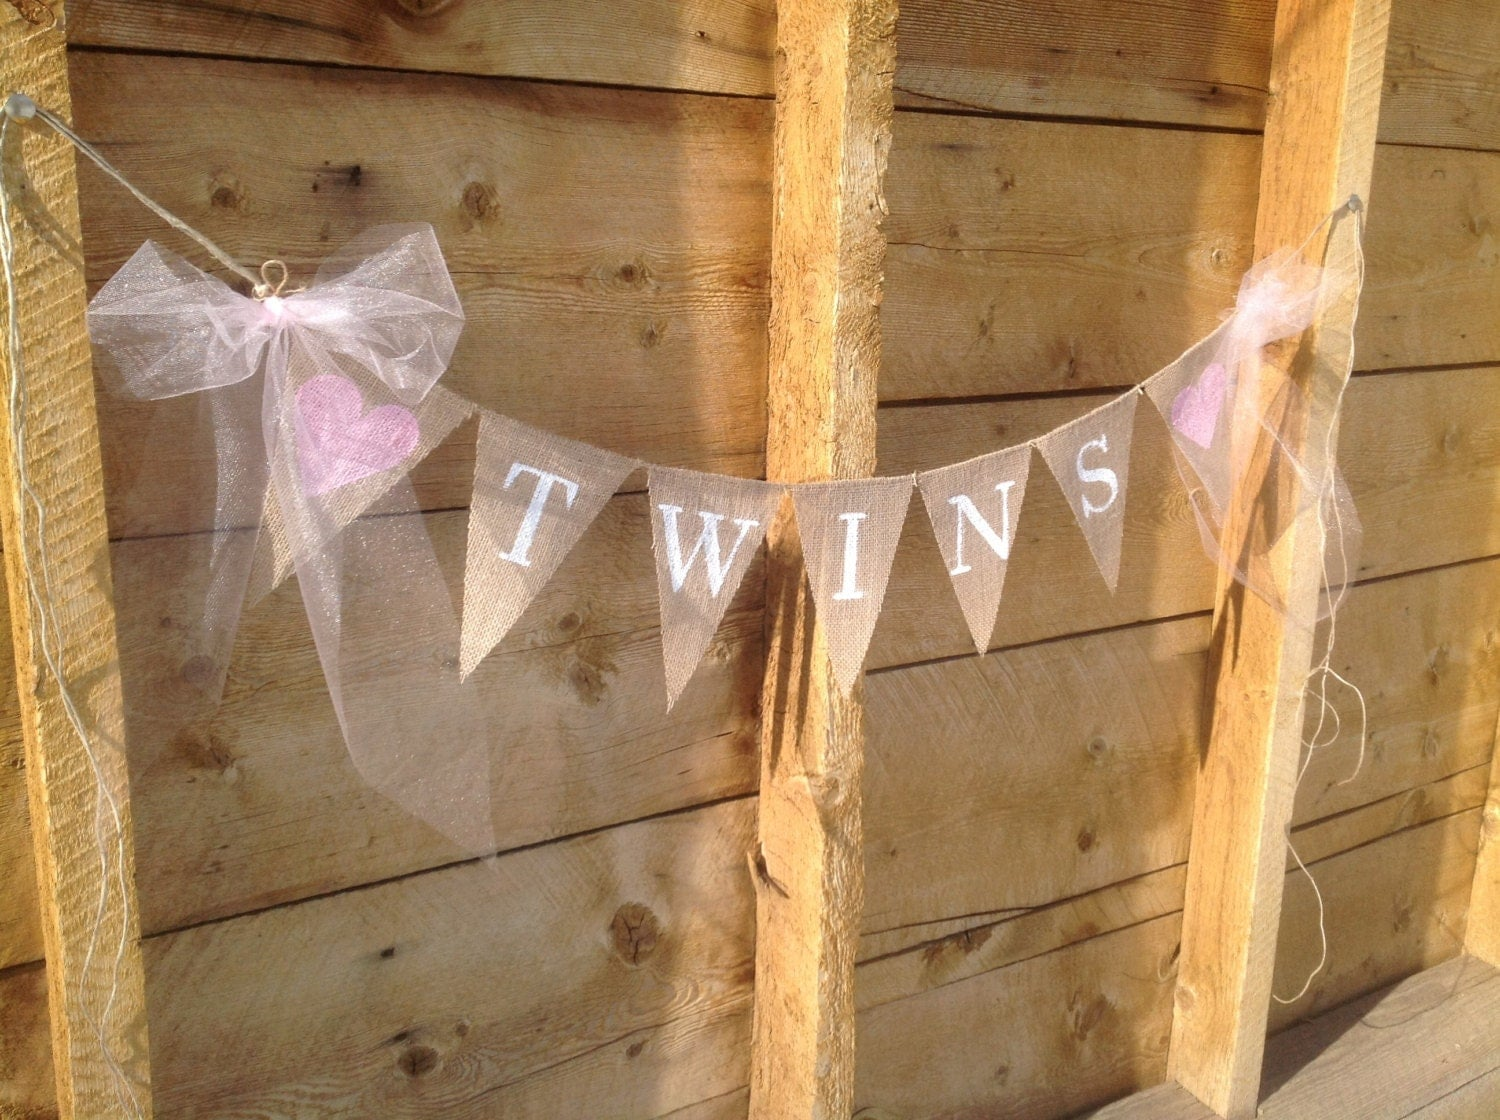 twins burlap banner in white lettering baby shower banner photo prop